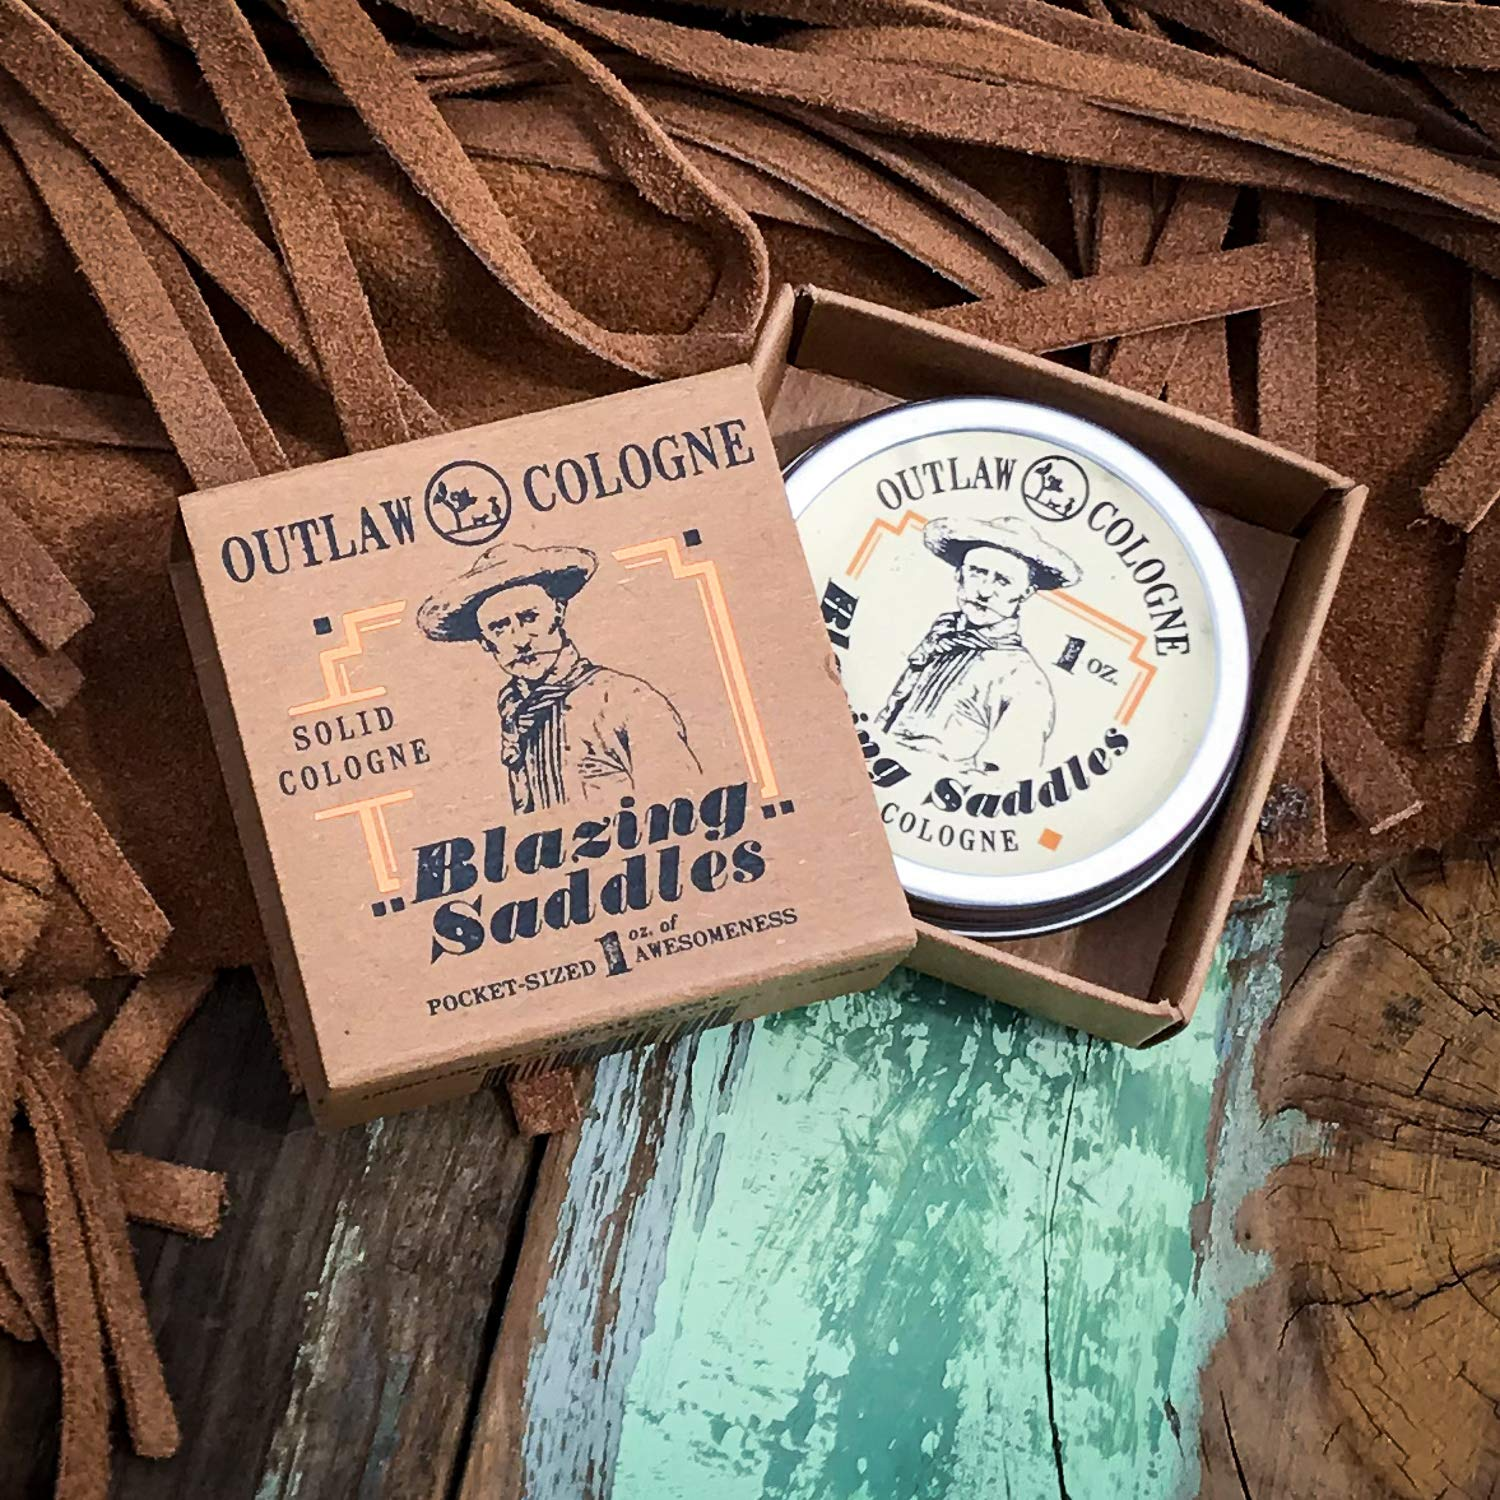 Blazing Saddles Solid Cologne - The Sexiest Cologne Ever - 1 oz - Western Leather, Gunpowder, Sandalwood, and Sagebrush in a Pocket-sized Tin - Men's or Women's Cologne by Outlaw Soaps